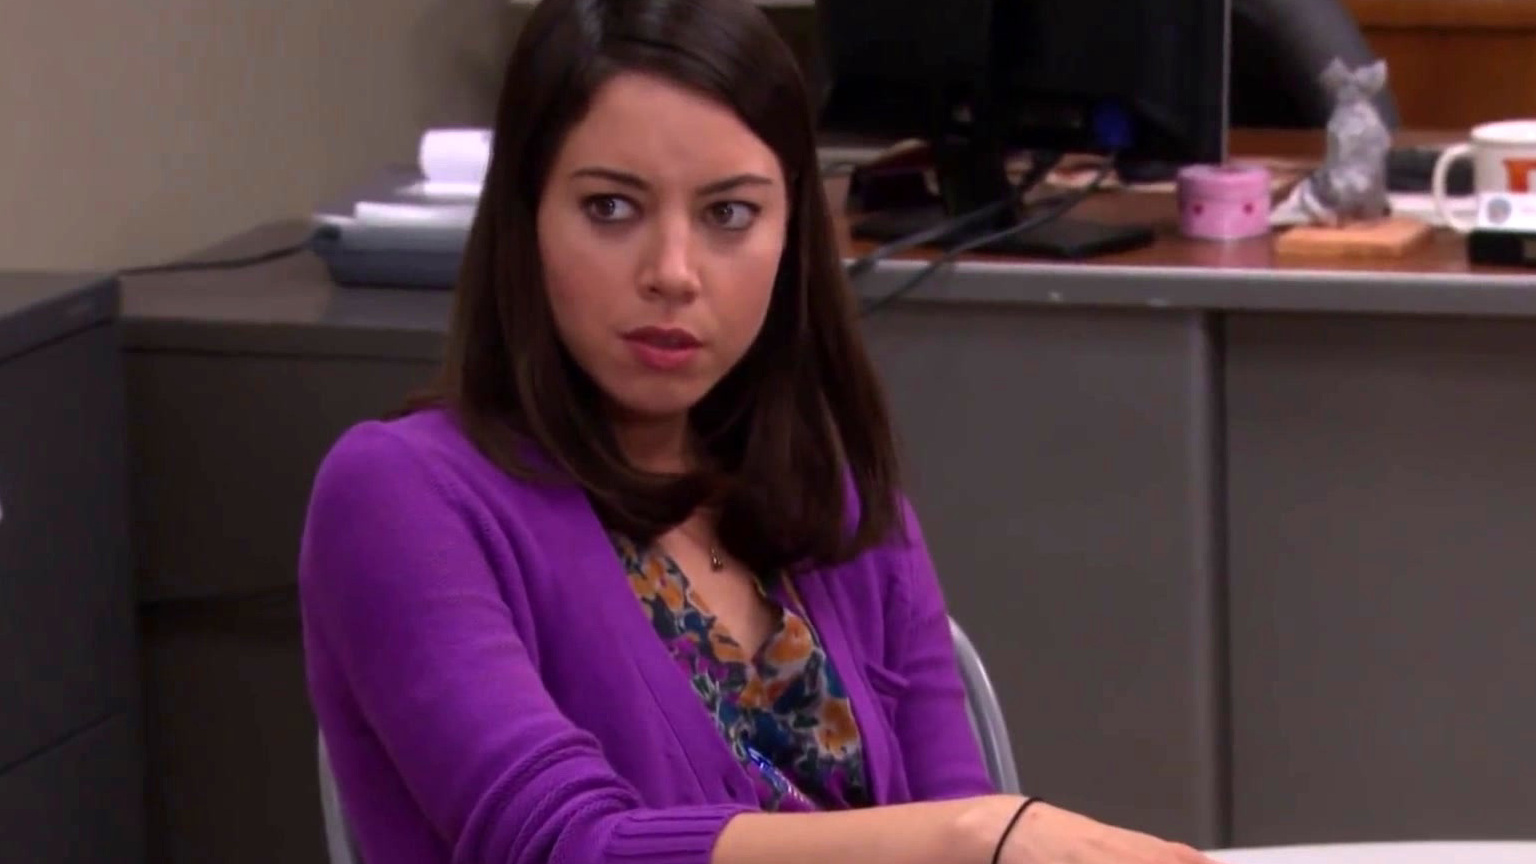 Parks And Recreation: April Ludgate's Getting Fired